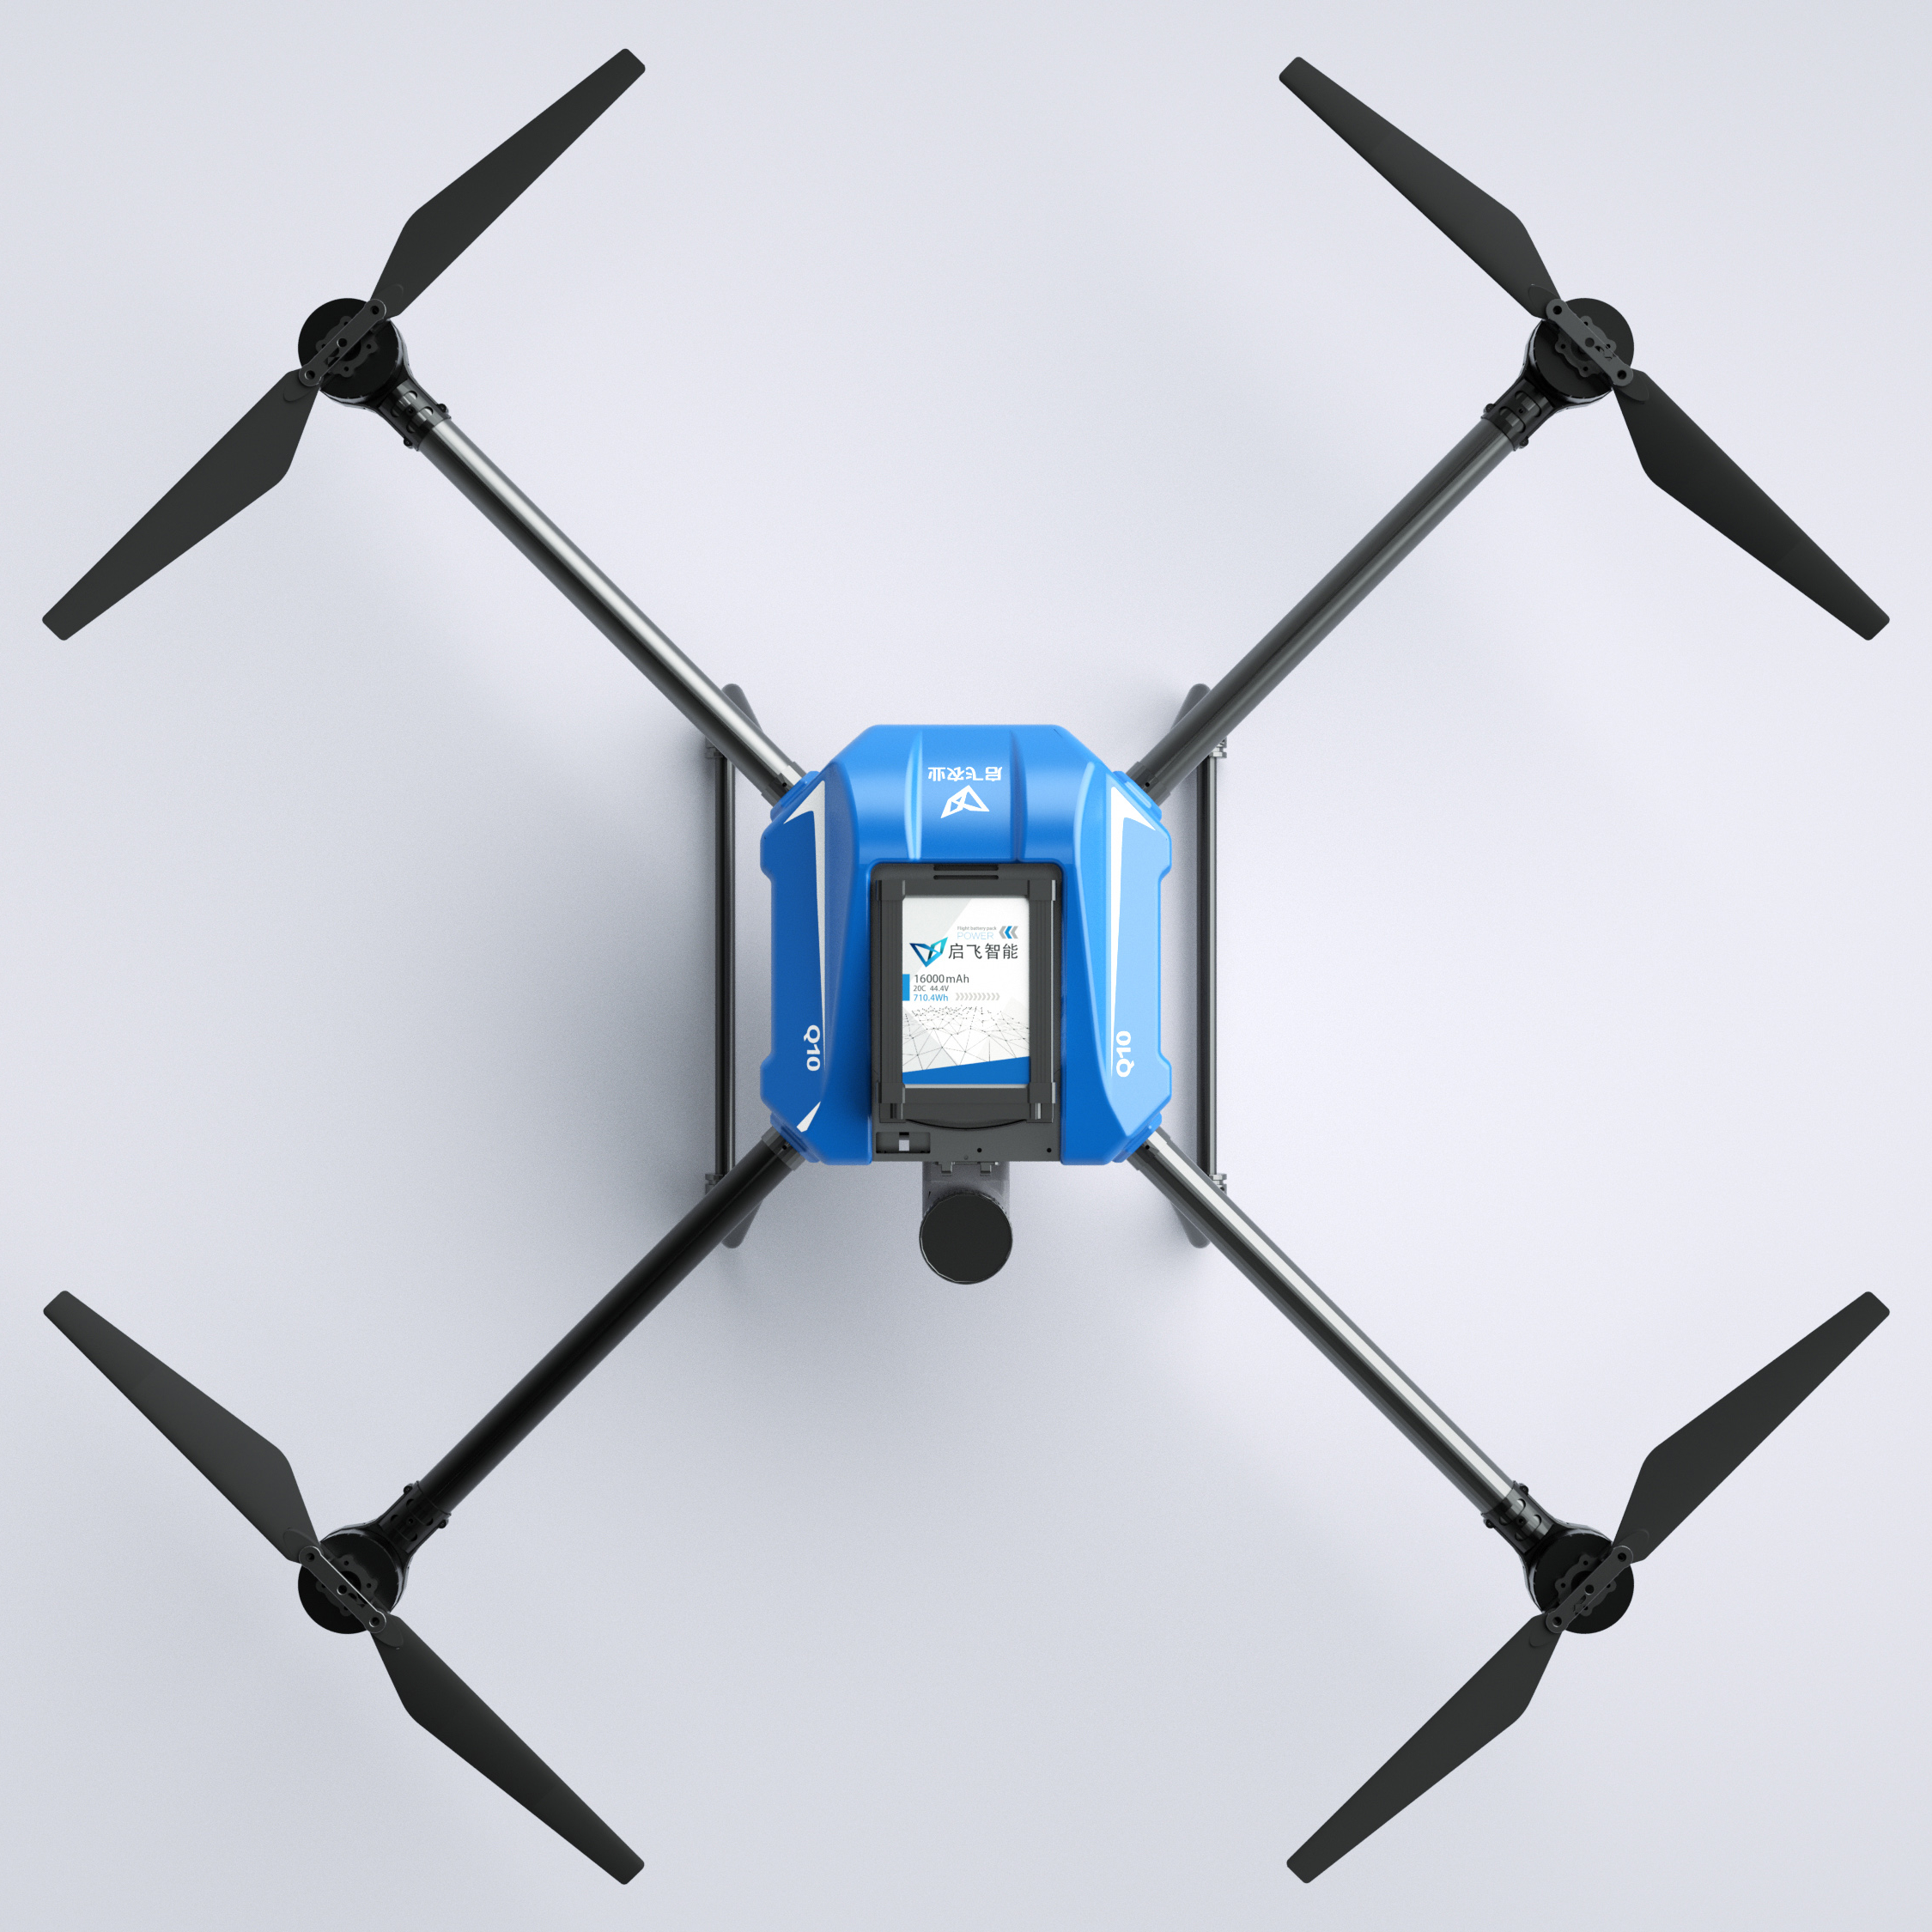 Reliable 10 L Plant Protection Drone <strong>Q10</strong> for Spraying Pesticides